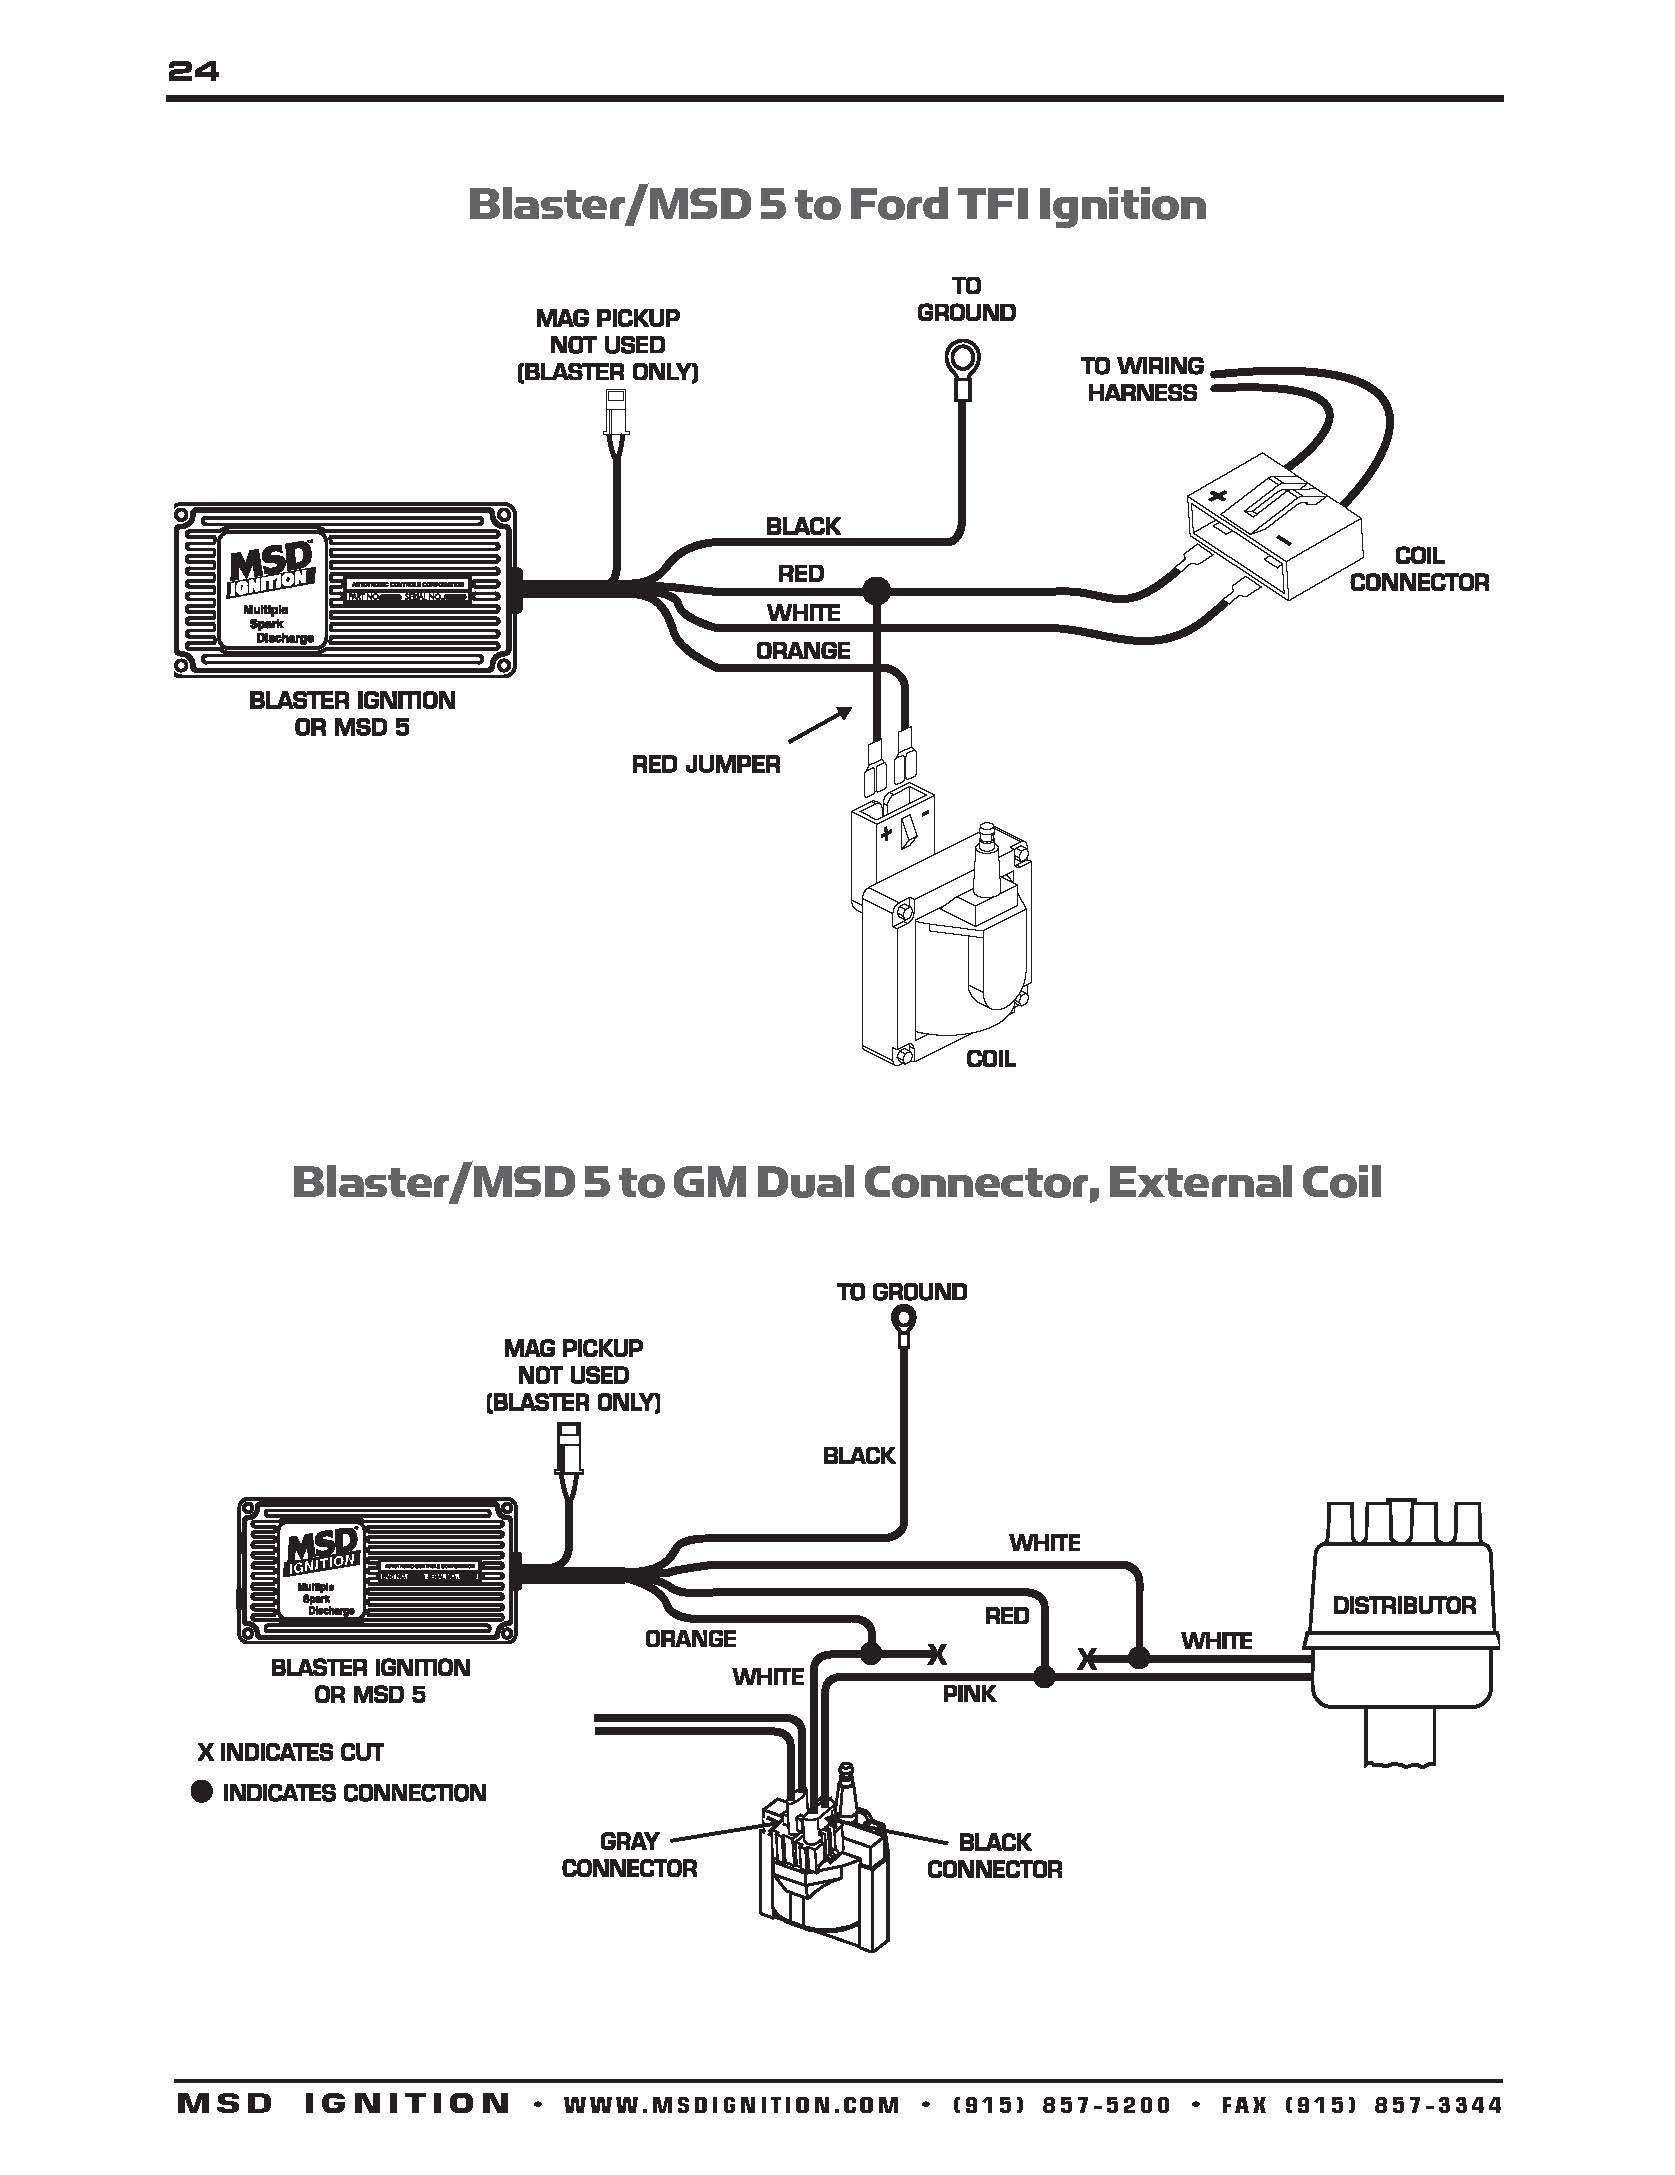 briggs and stratton ignition coil wiring diagram beautiful wiring lighting  coil wiring briggs and stratton ignition